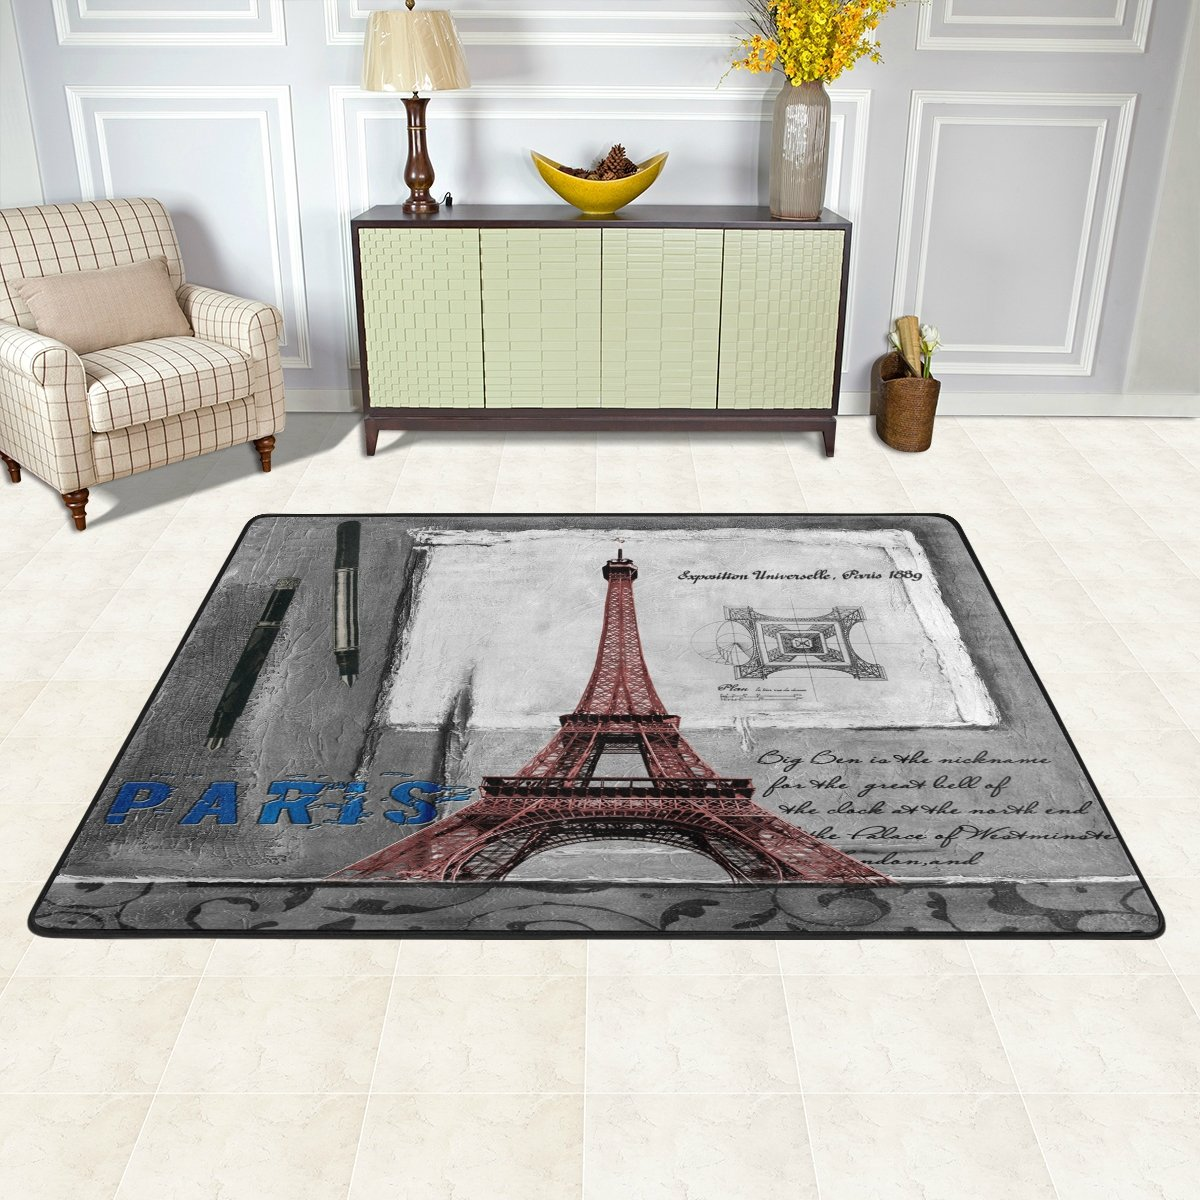 Baby Vintage Retro Eiffel Tower Polyester Area Rug Mat For Living Dining Dorm Room Bedroom Home Decorative Naanle Paris Area Rug 1 8x2 7 Rugs Carpets